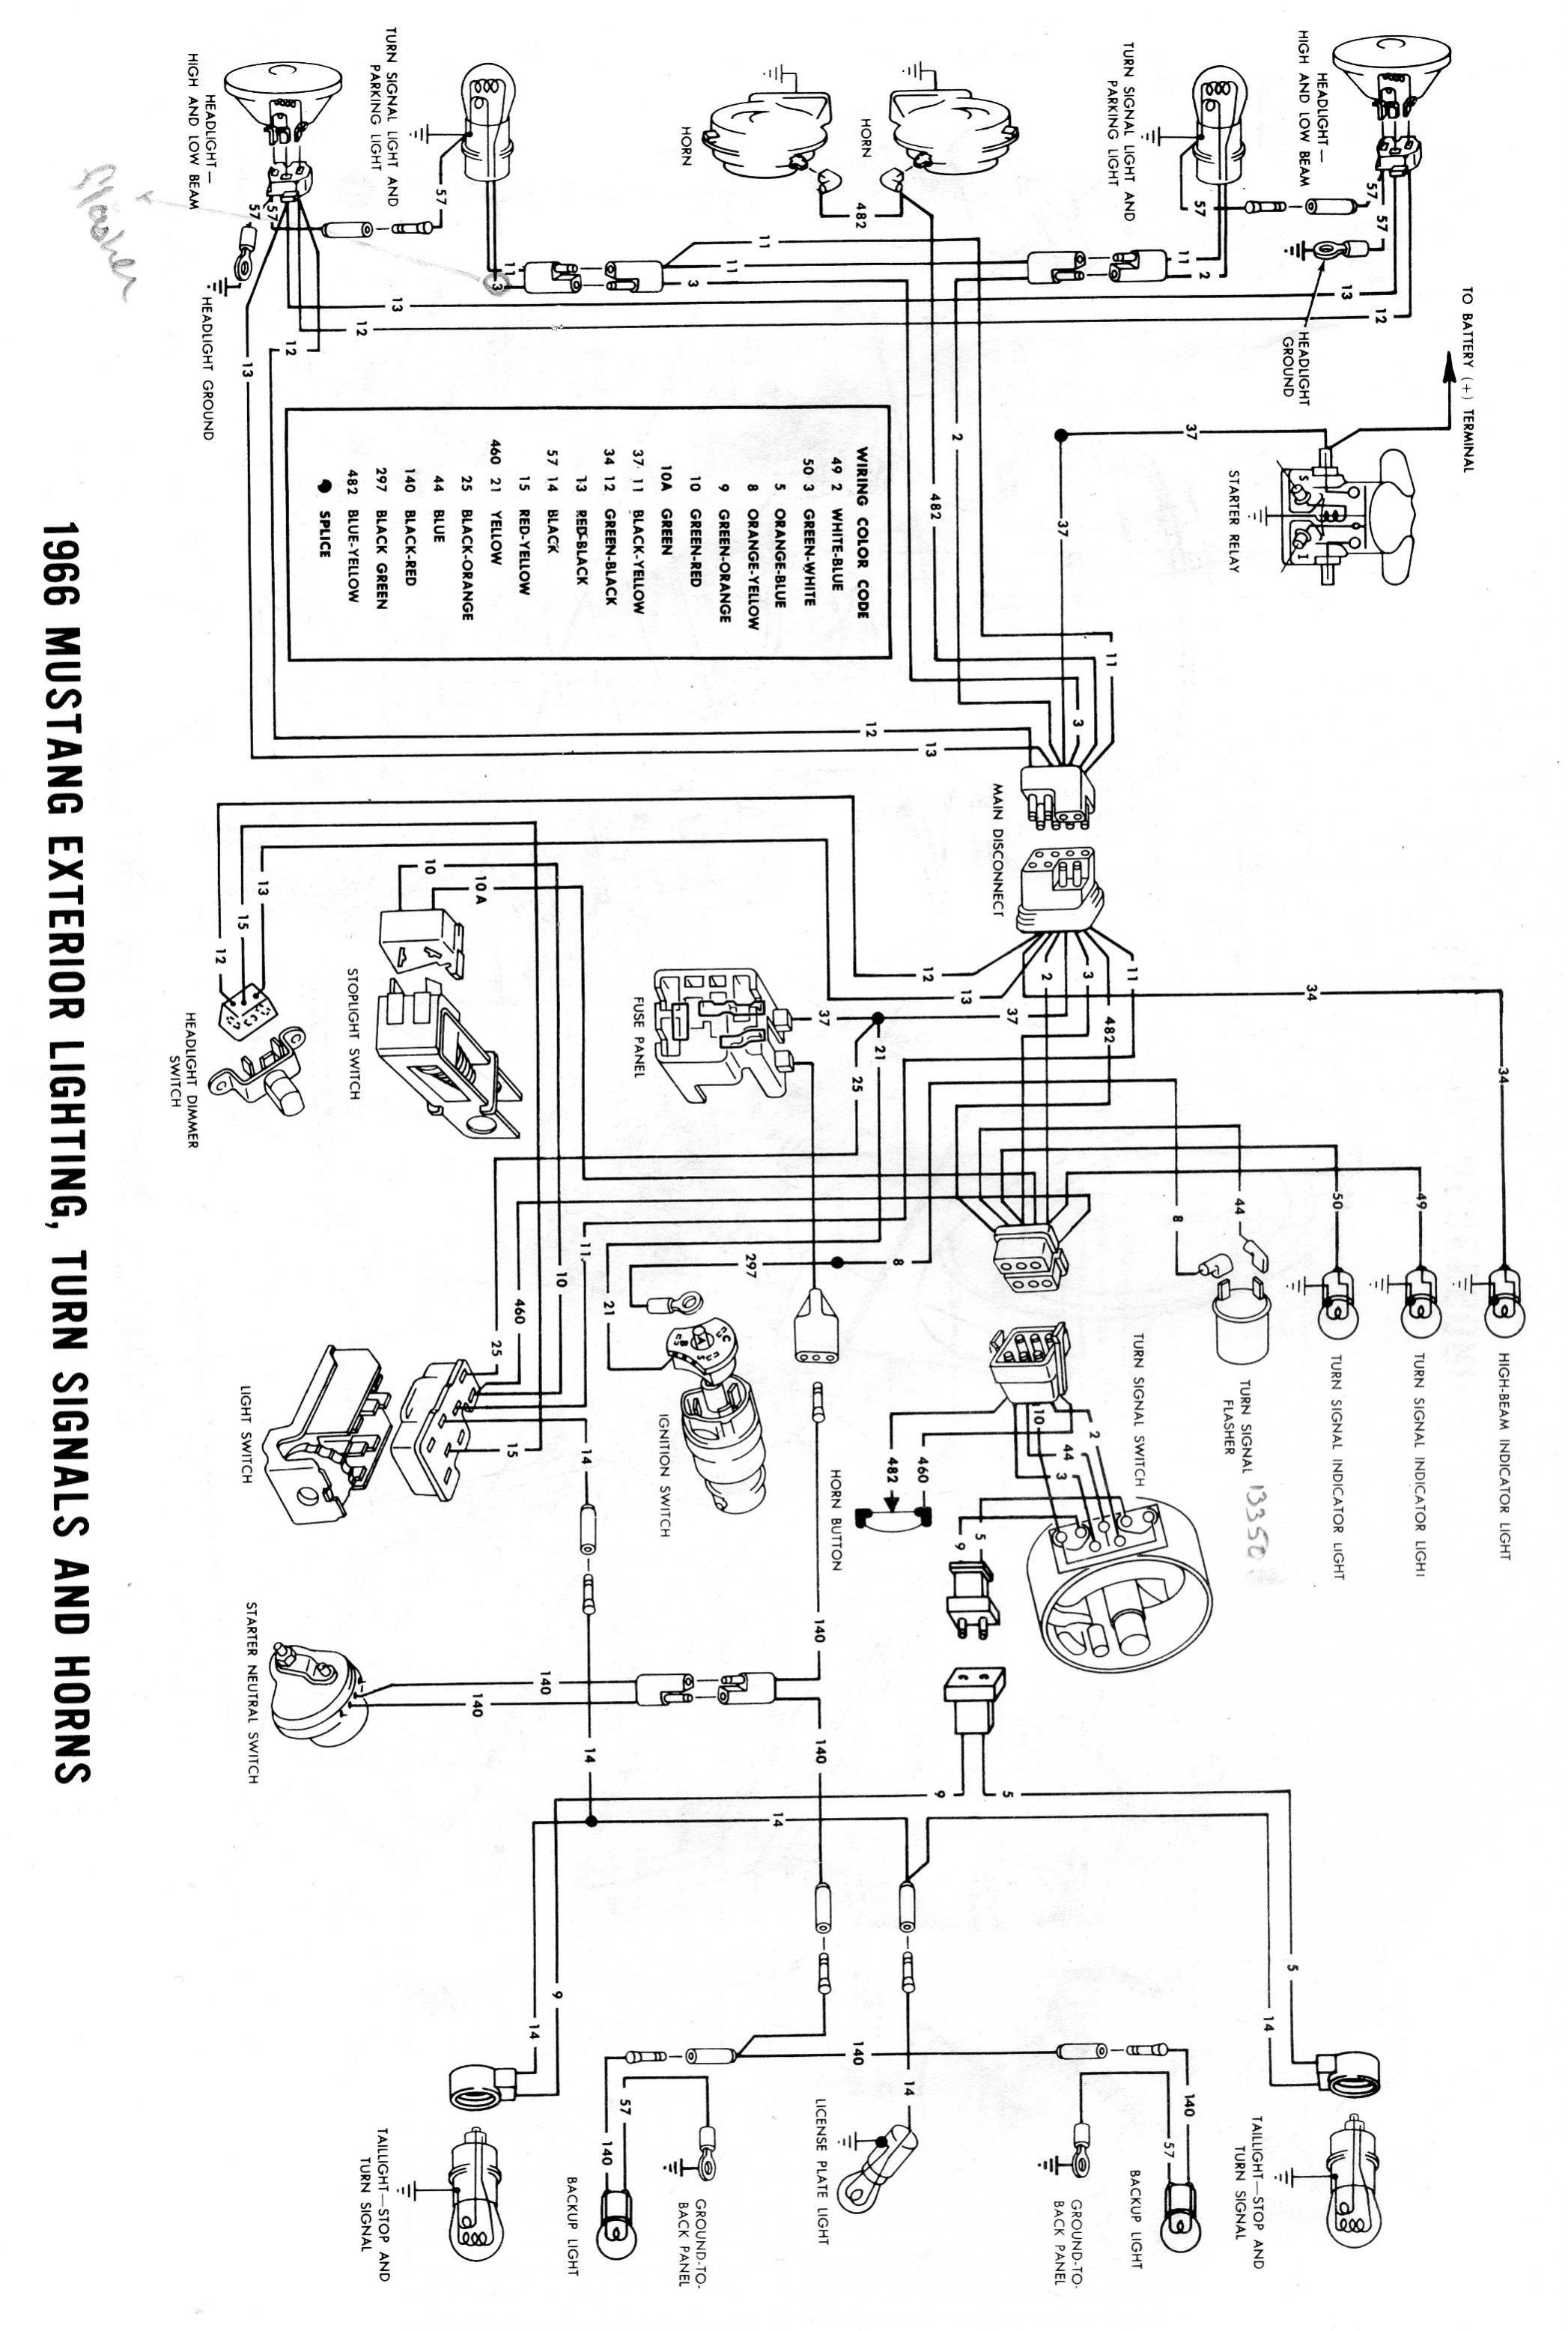 1973 Ford Mustang Interior Light Wiring Diagram Electrical Product Diagrams U2022 351 Vacuum